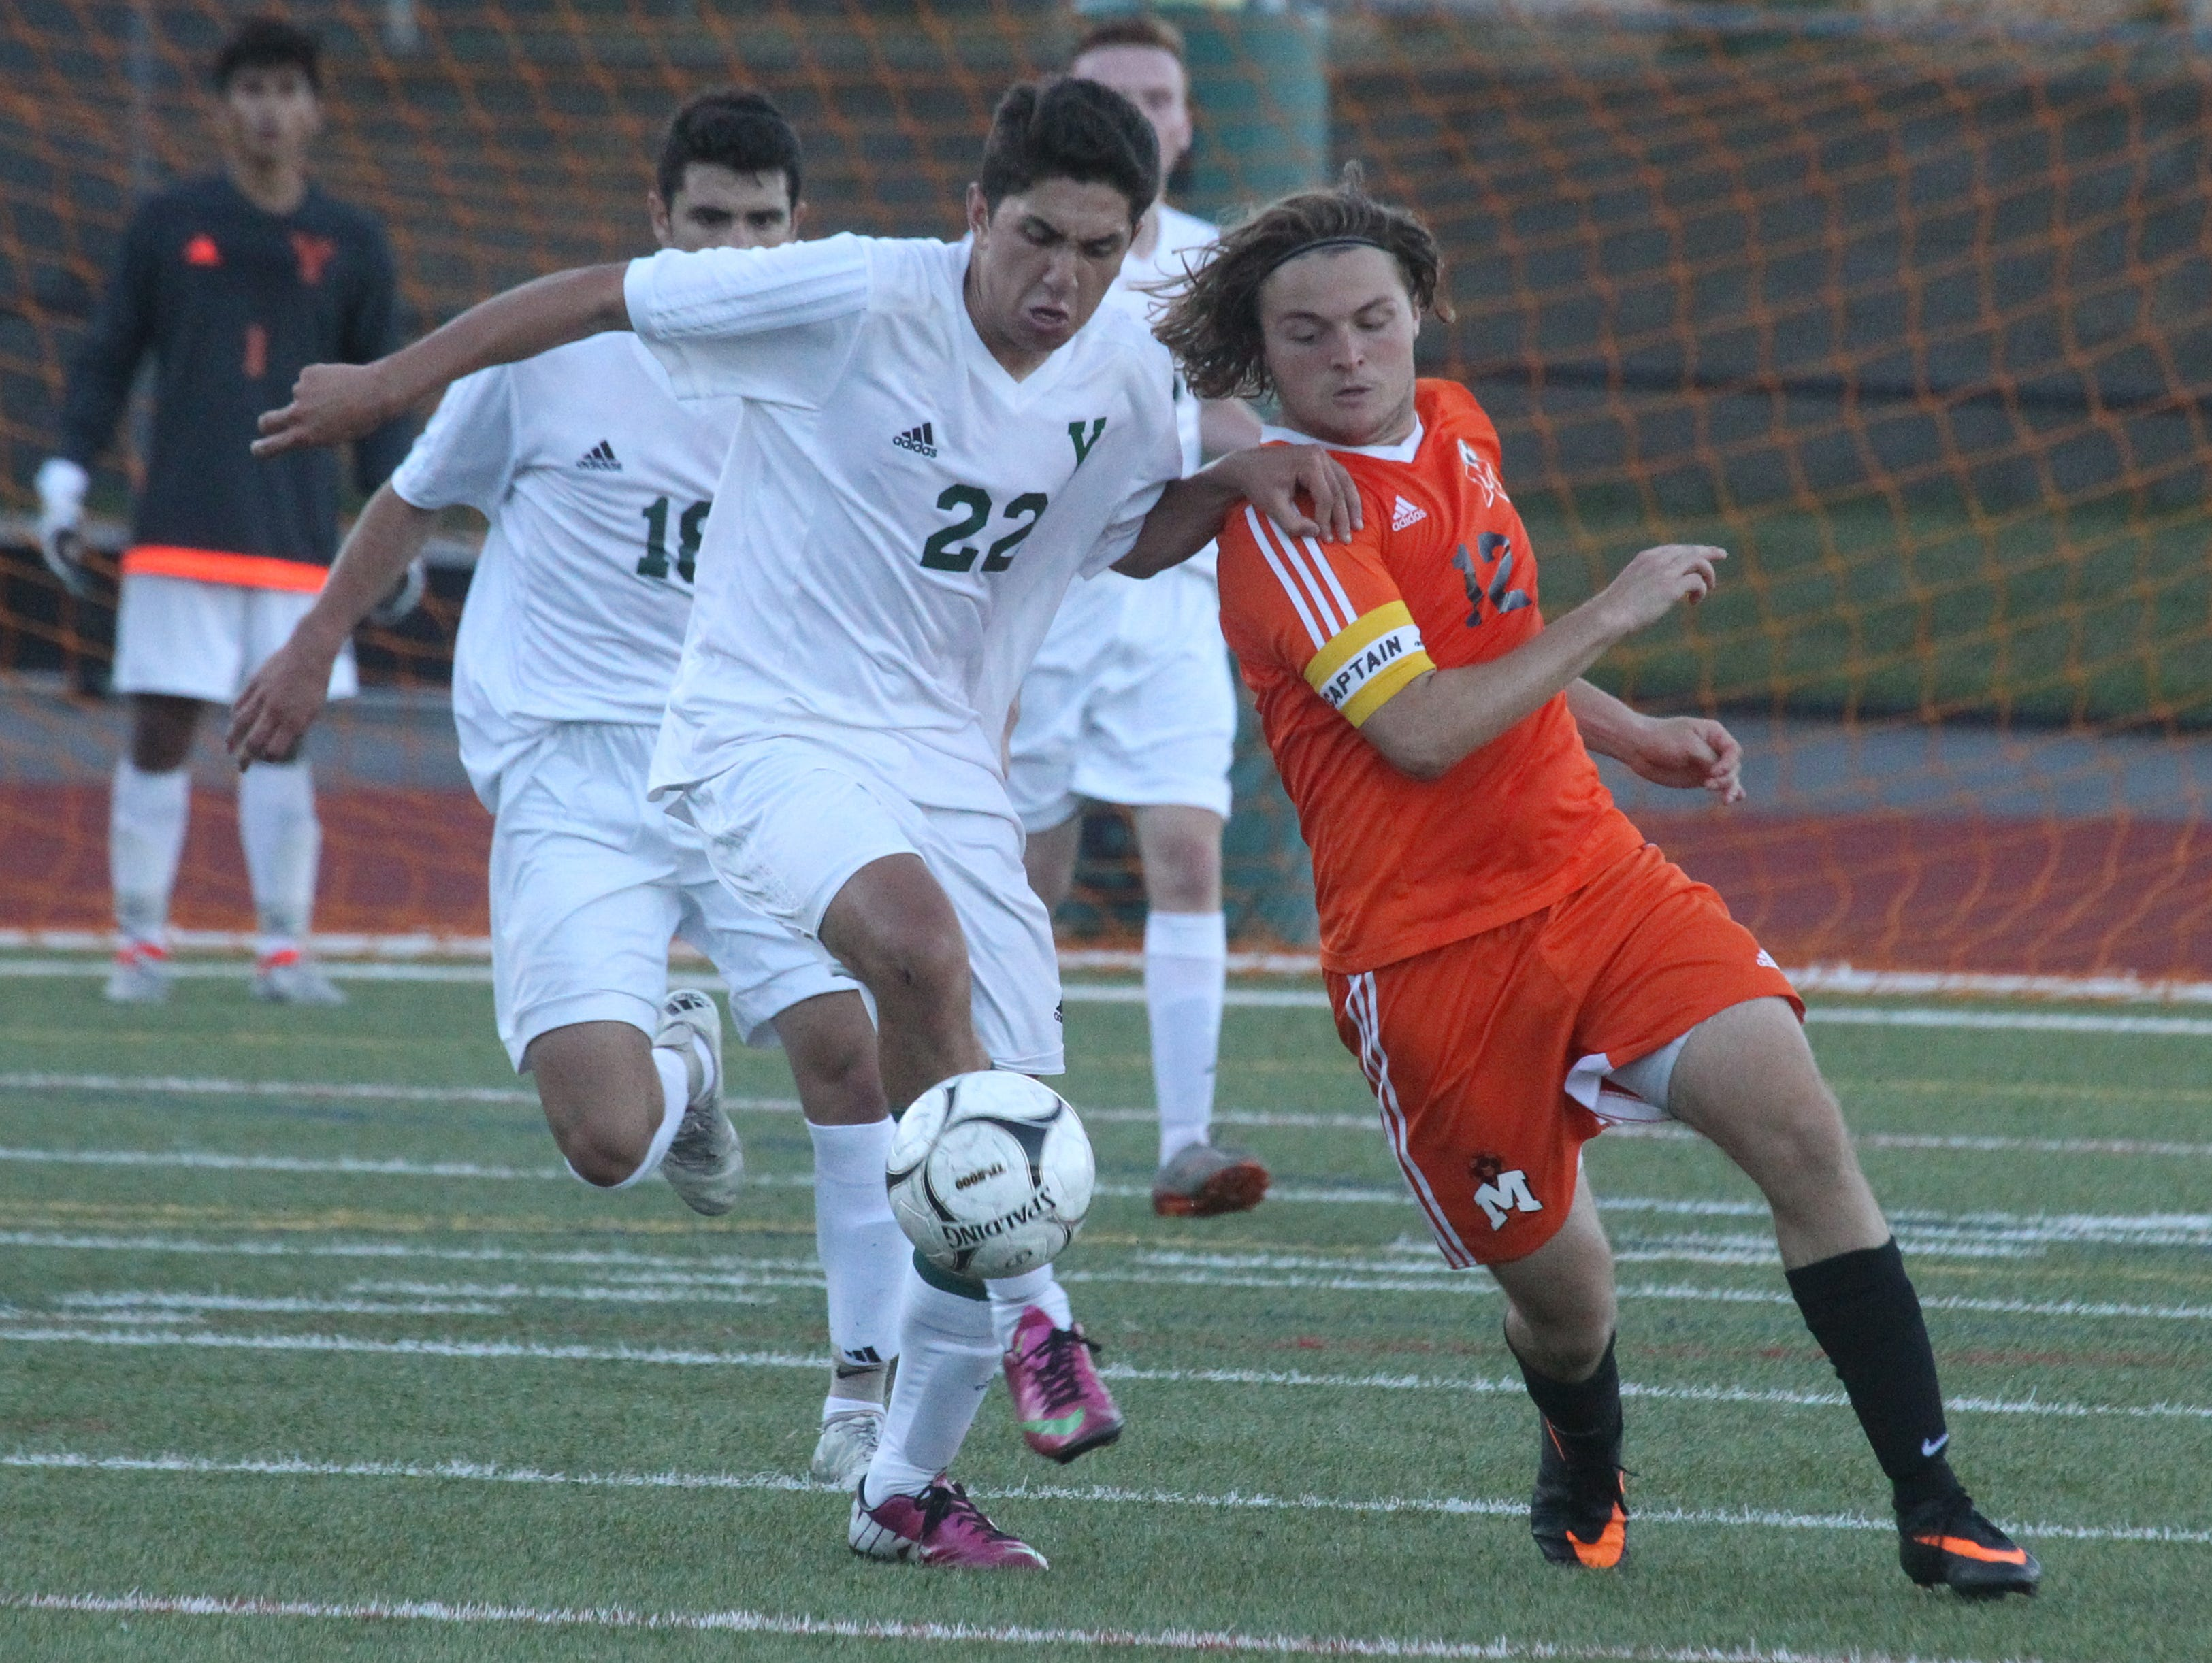 Yorktown's Ankit Patel, left, fights for the ball with Mamaroneck's Matt DiCicco during their game at Yorktown Sept. 12, 2016. Yorktown won 4-2.